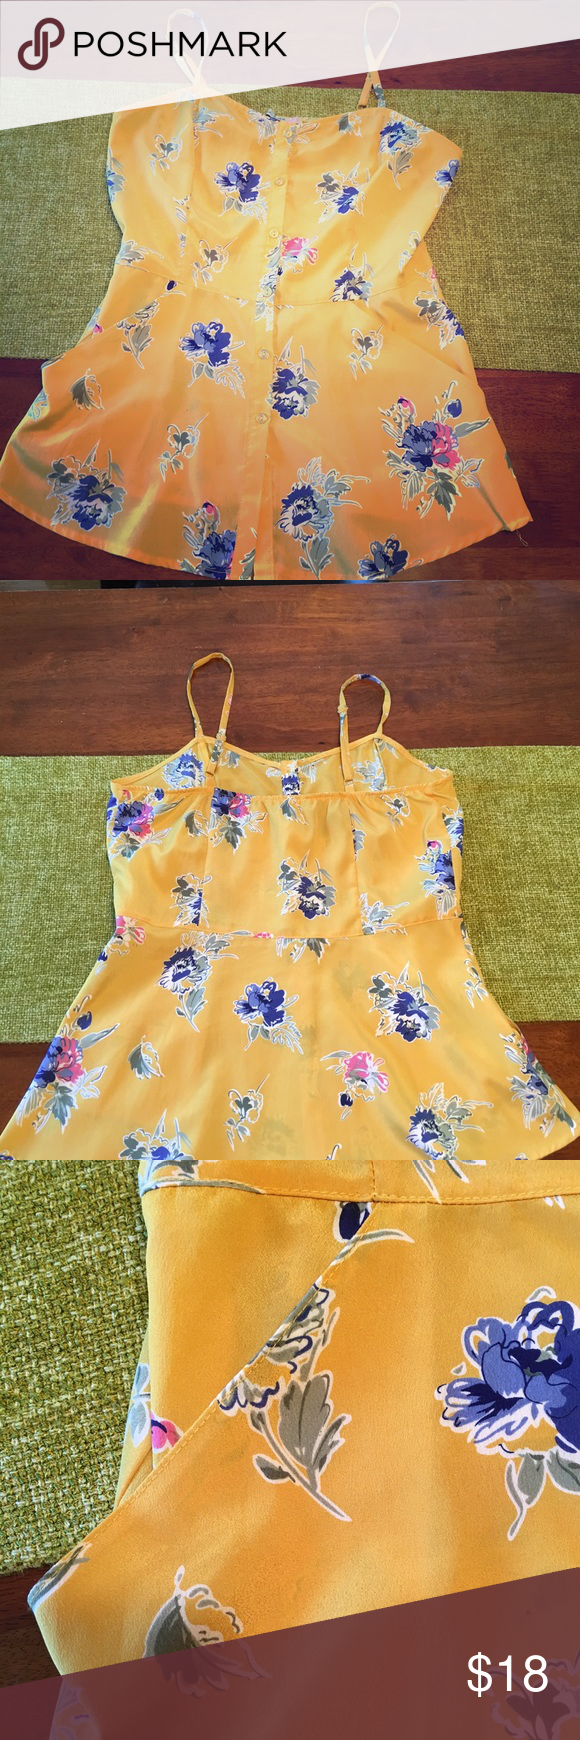 Super cute yellow floral tank! With pockets! Super cute tank for a casual day or evening! Buttons all the way up the front and has pockets! Tops Tank Tops